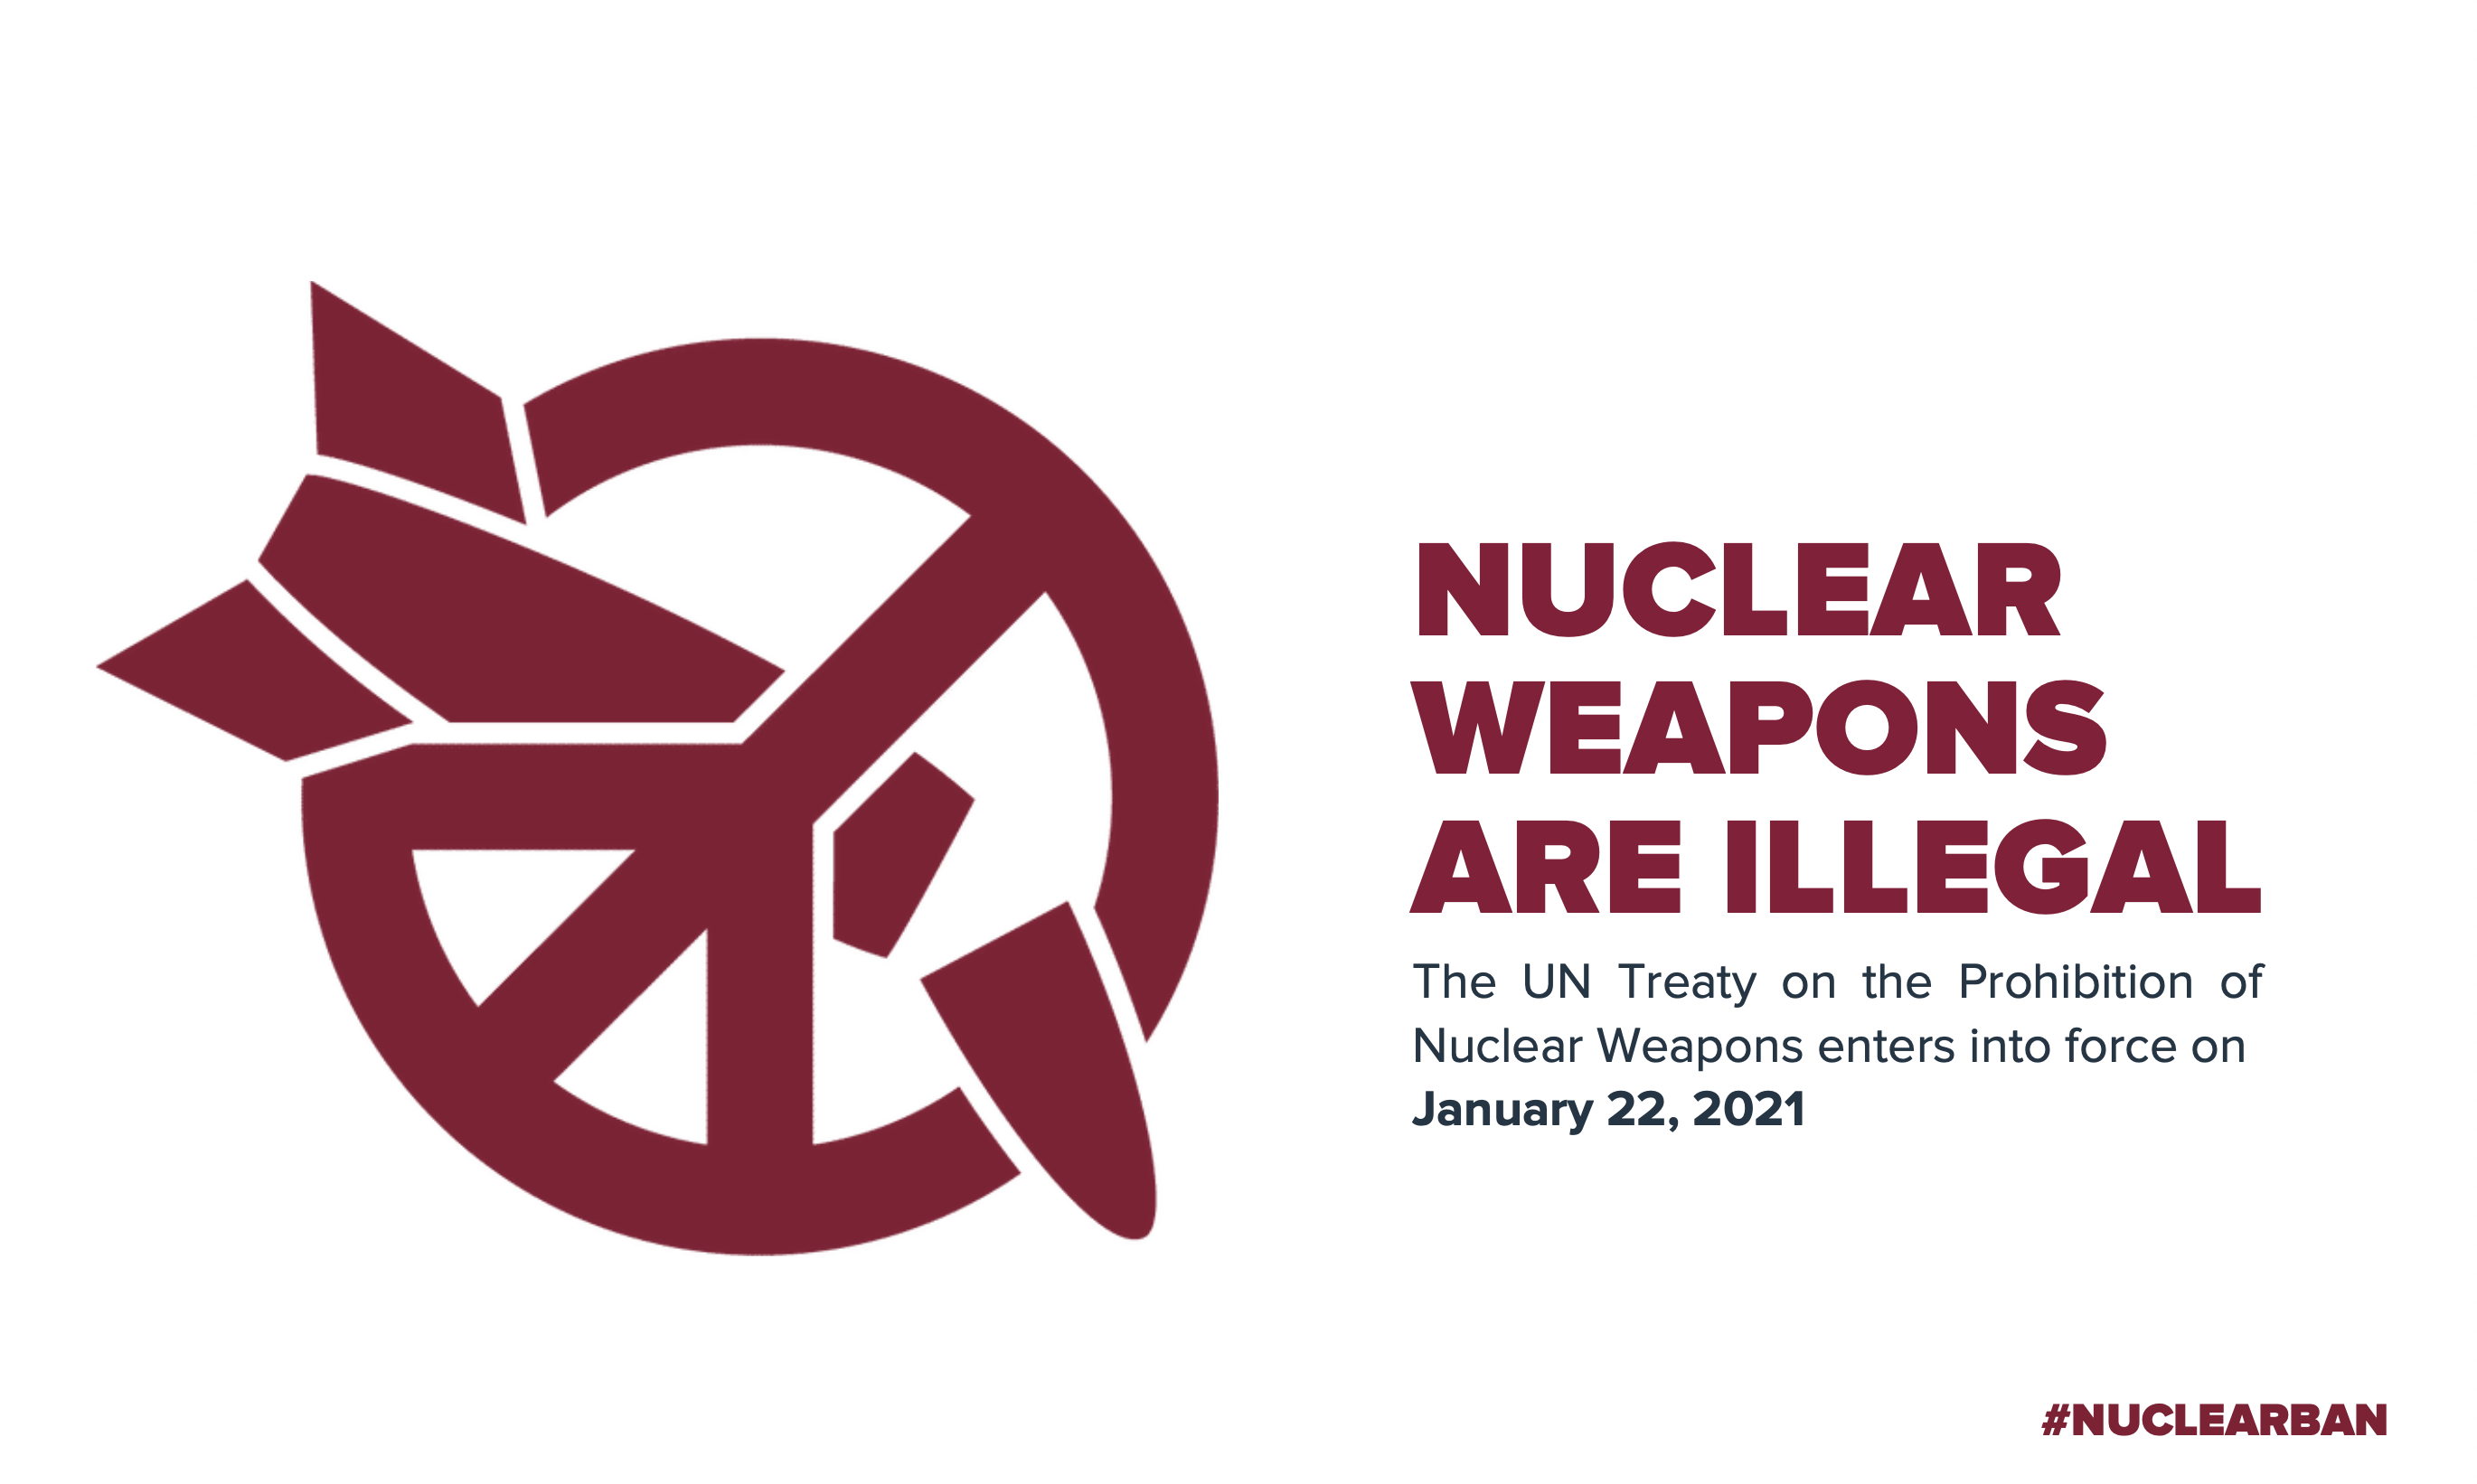 nuclear weapons illegal 2021